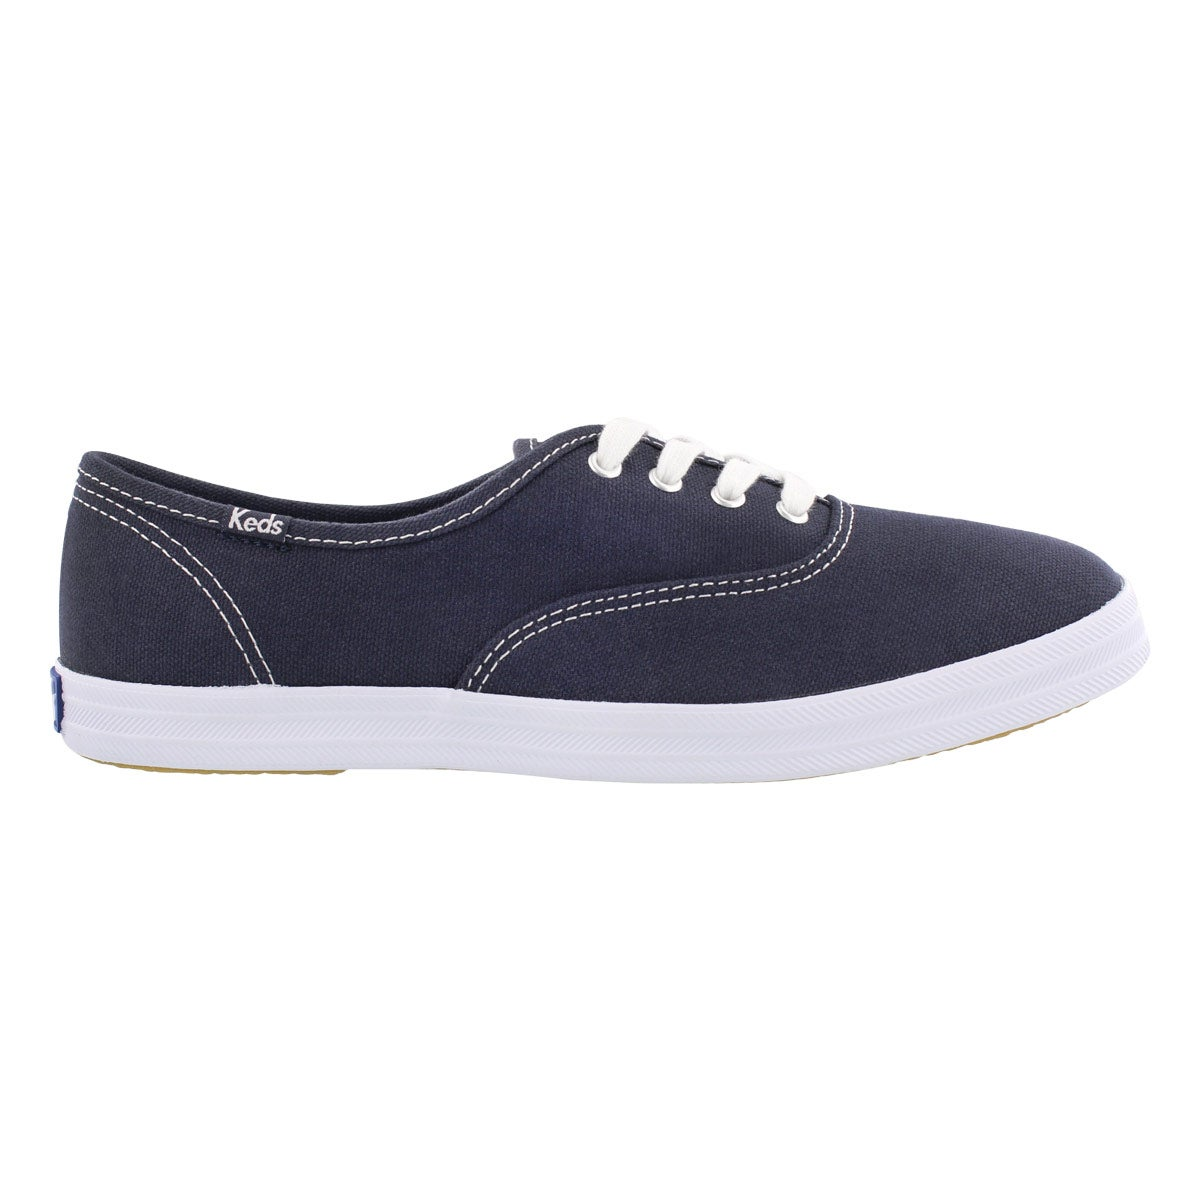 Lds Champion navy canvas CVO sneaker